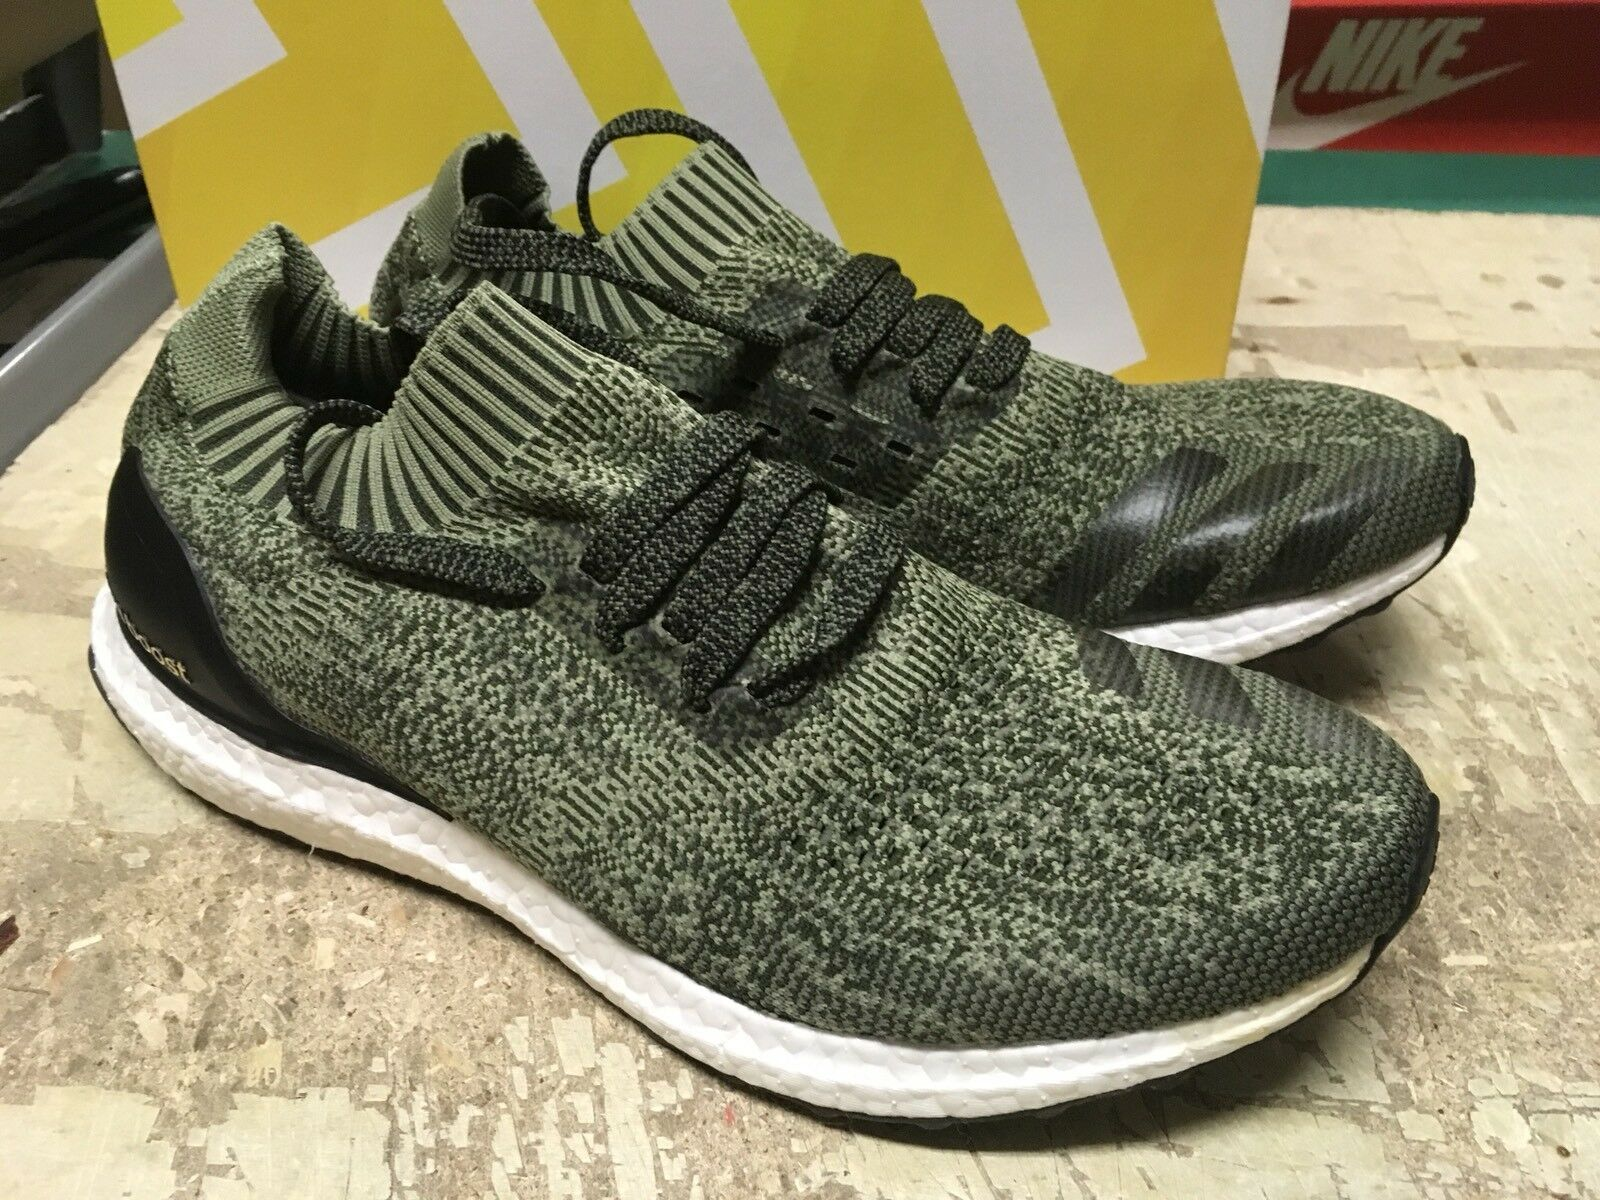 USED Men's ADIDAS ULTRA BOOST UNCAGED Olive BB3899 SZ 10 Free SHIP RUNNING SHOES